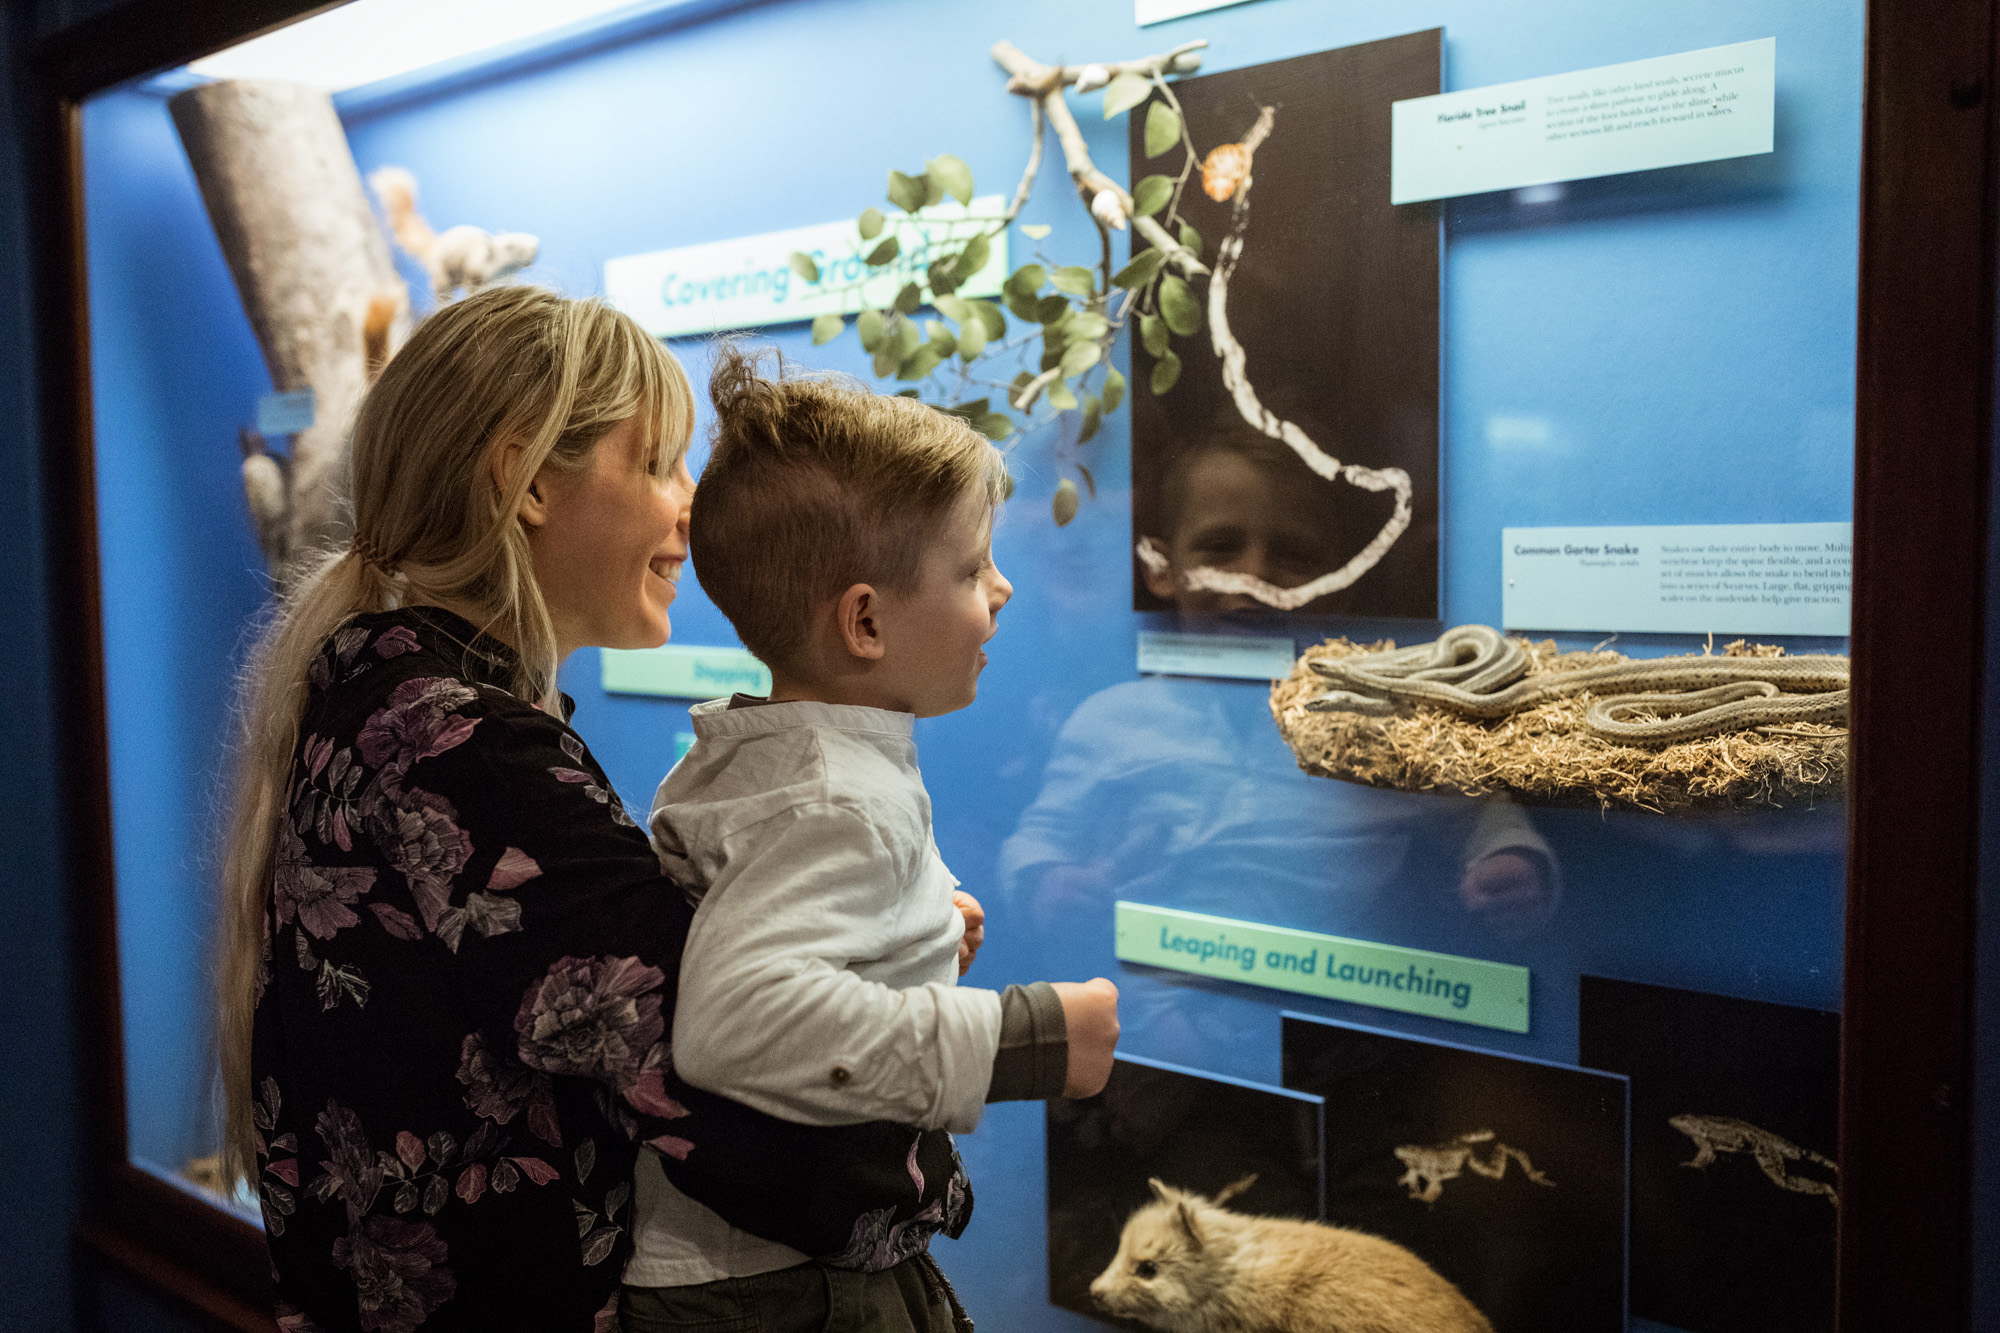 A woman holds up a little boy as they look into a taxidermy case filled with snakes, squirrels, and another small mammal.